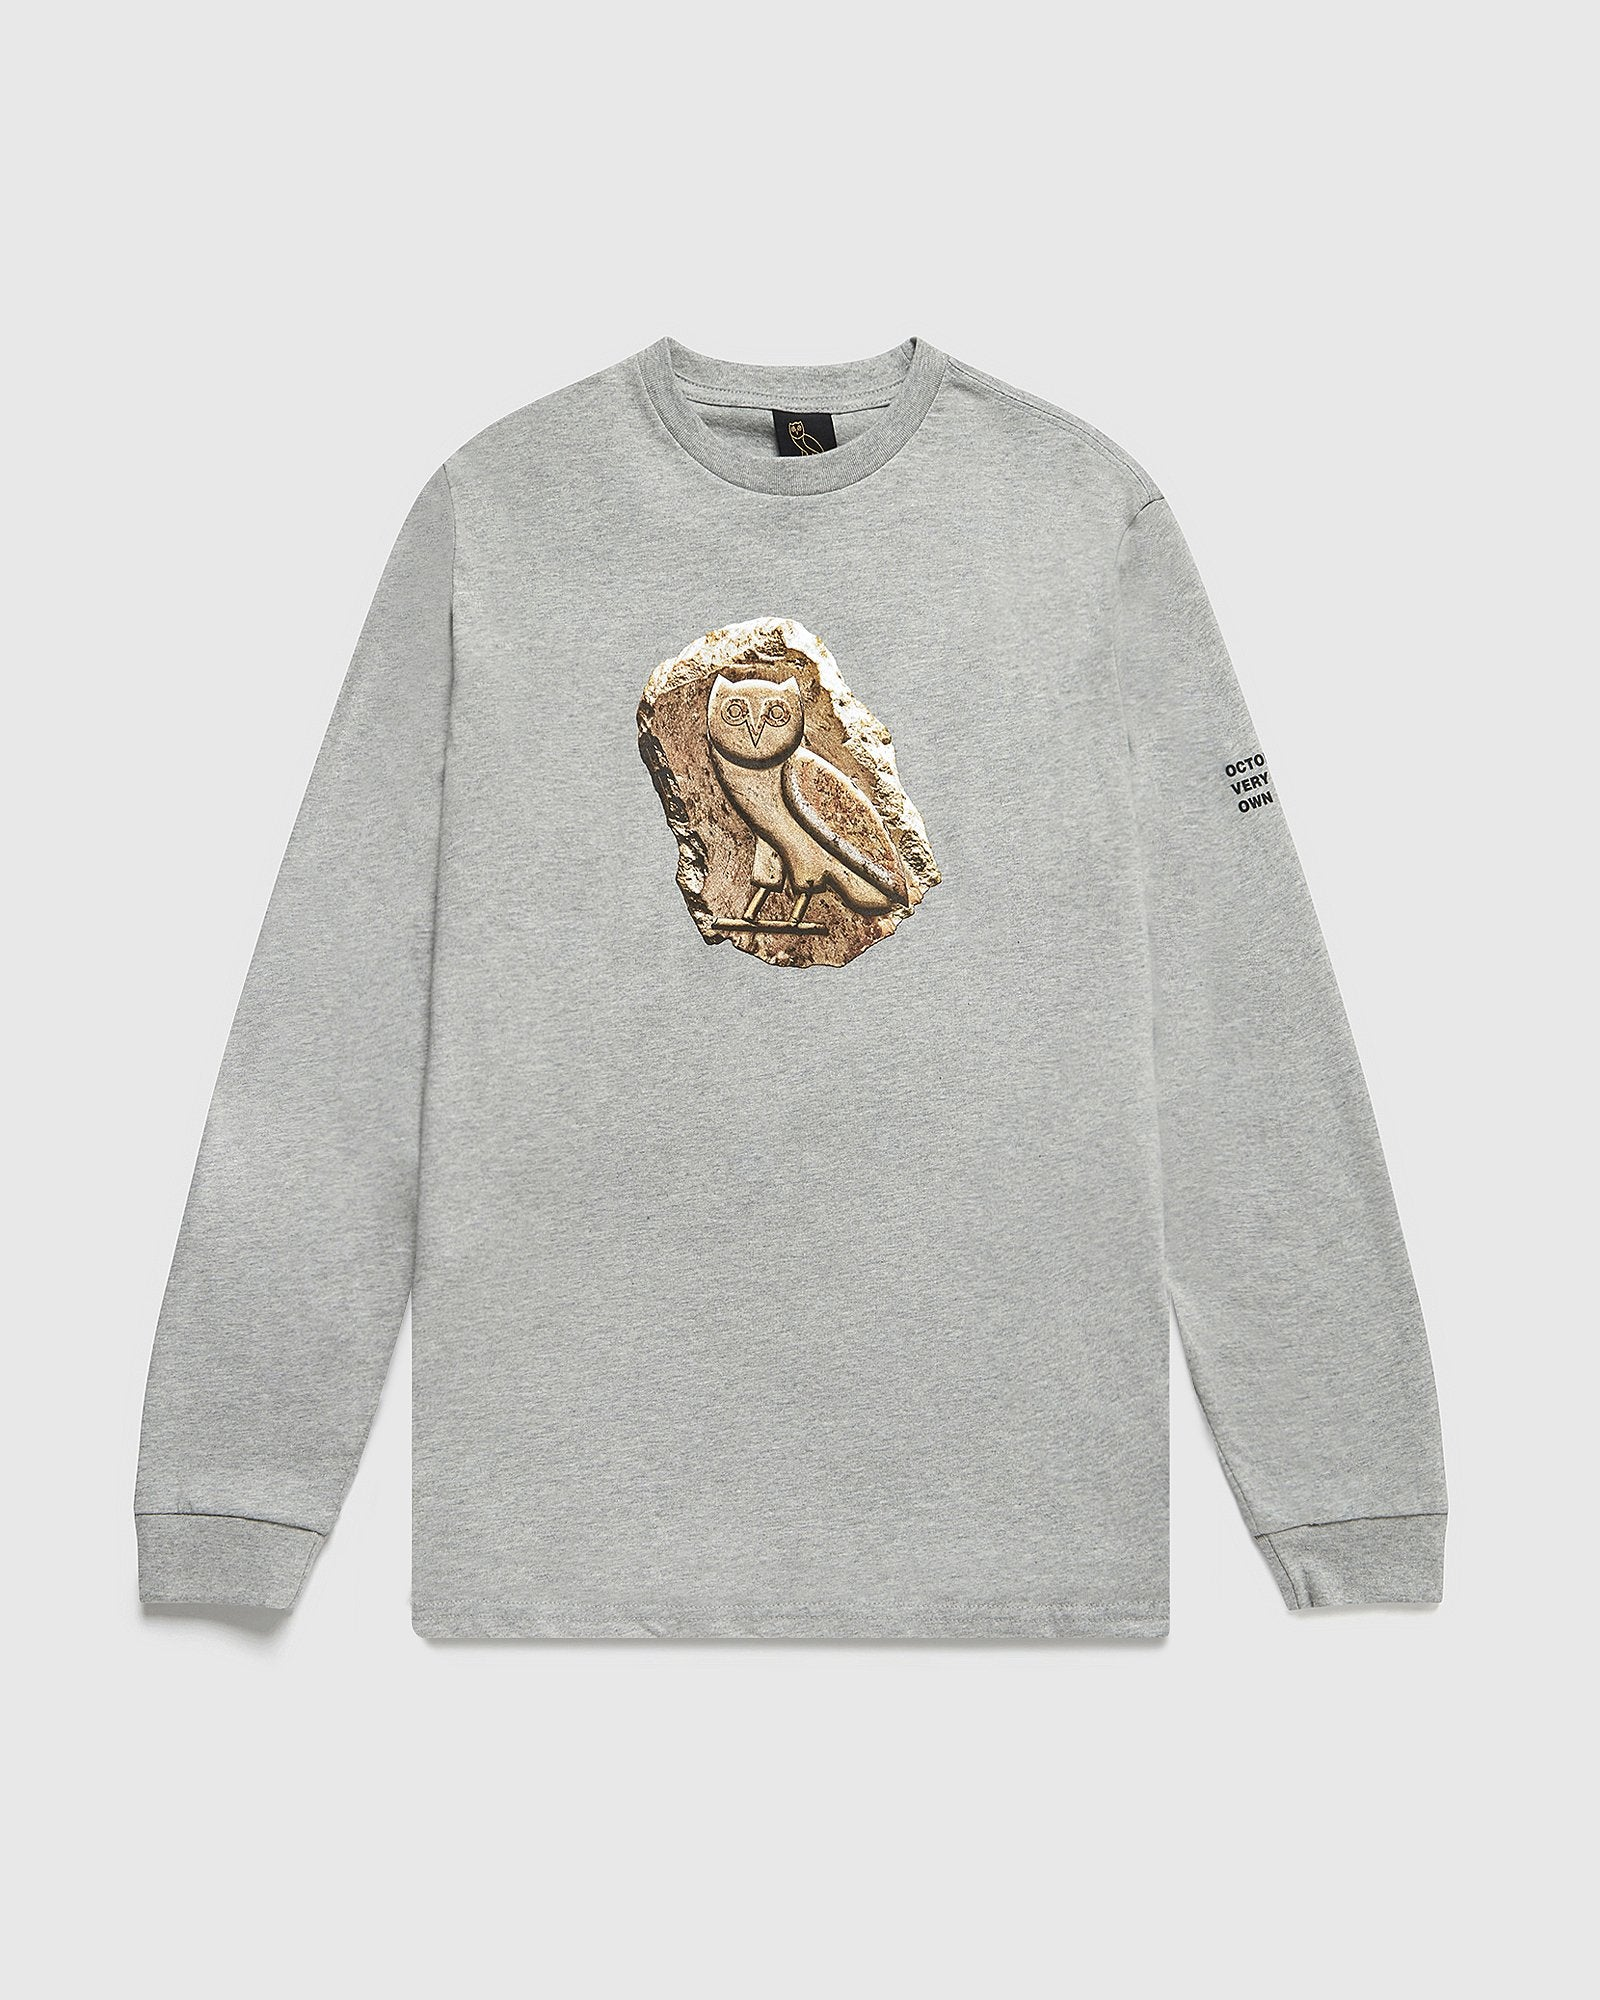 HIEROGLYPH LONGSLEEVE T-SHIRT - HEATHER GREY IMAGE #1